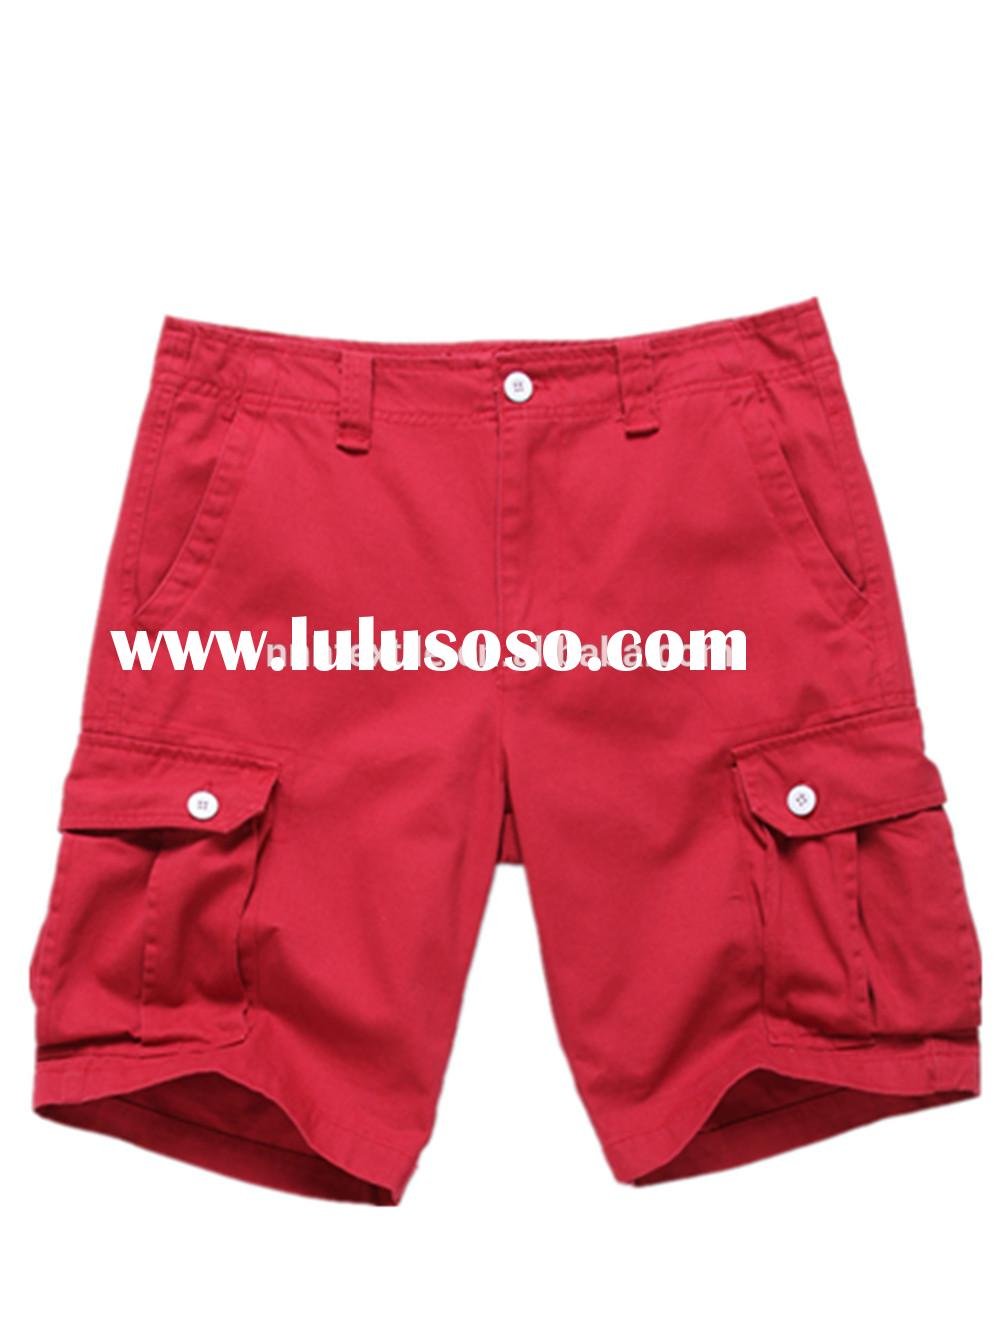 branded cargo shorts stock lot for man